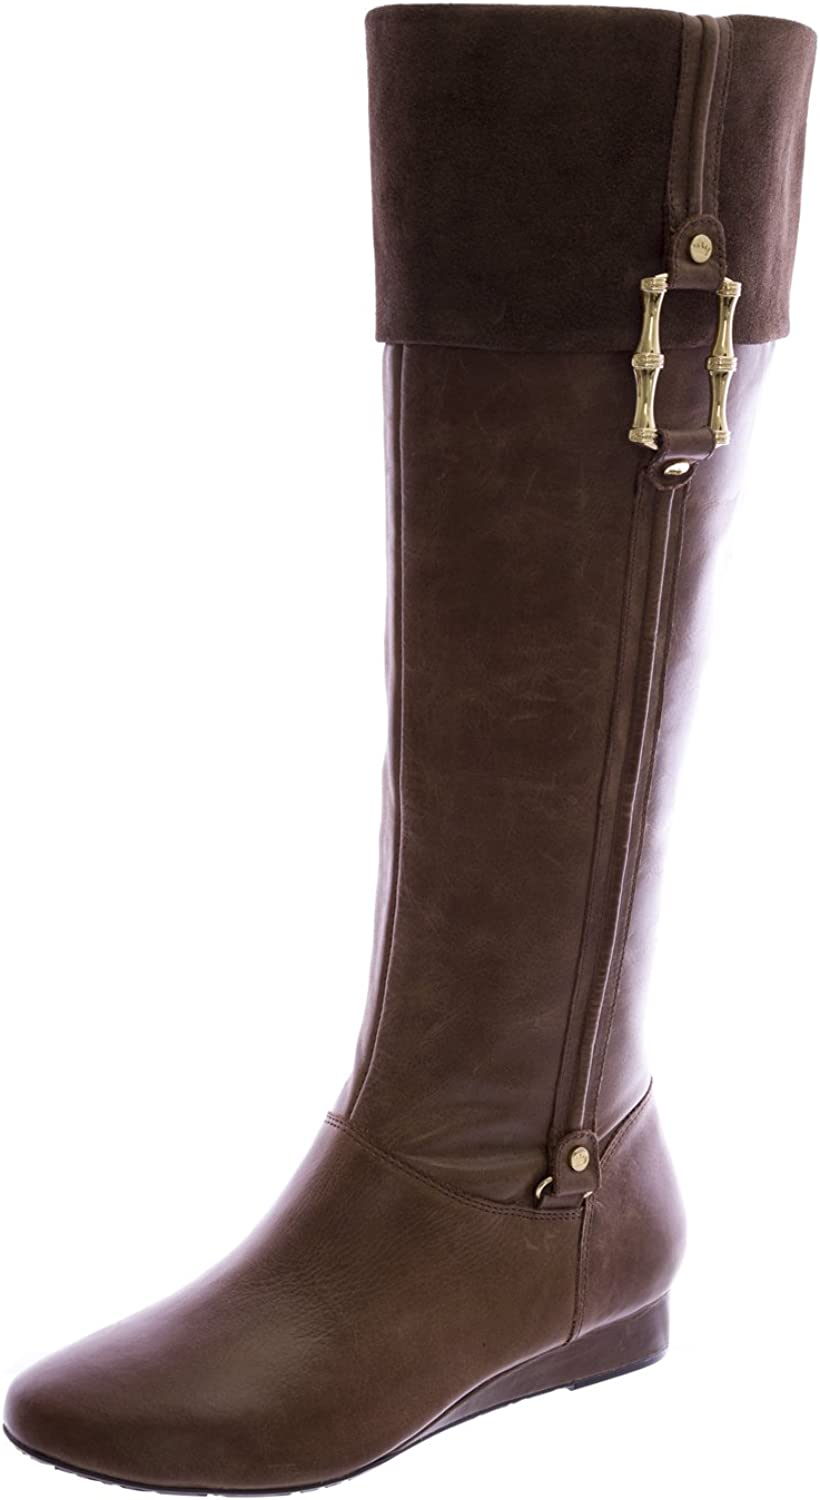 Elaine Turner Ryann Leather Low Heel Wedge Boots Taupe